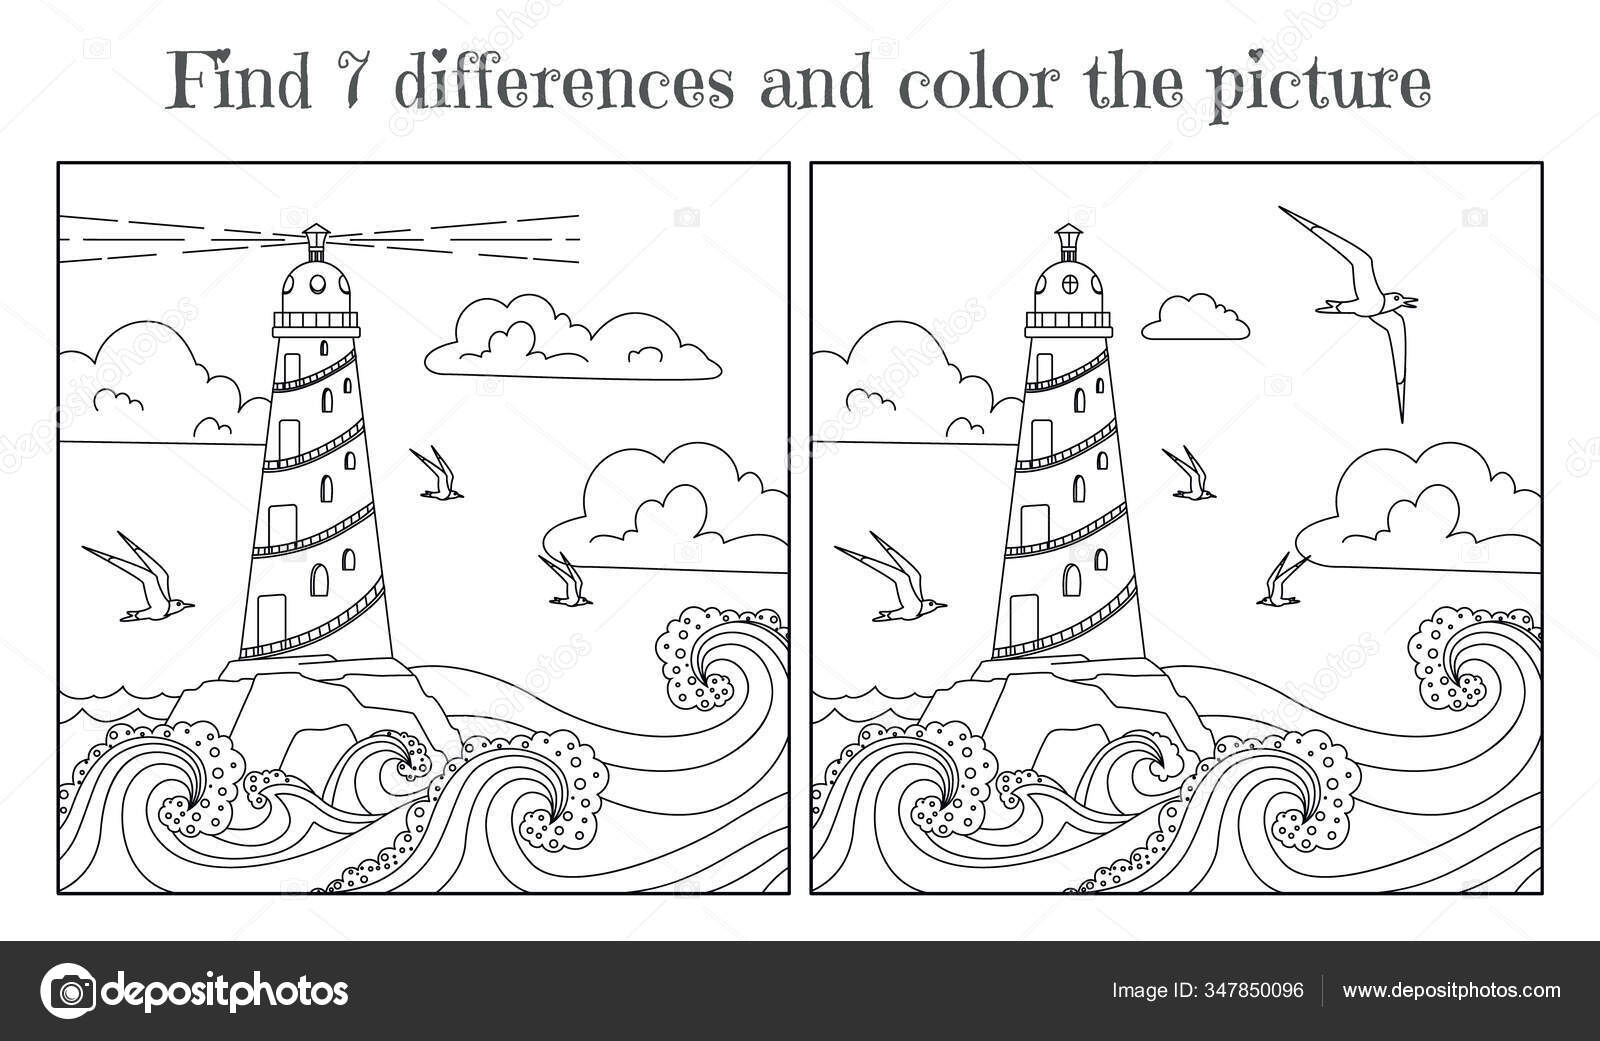 Children Coloring Book Find Seven Differences Seascape Lighthouse Waves Seagulls Stock Vector C Elfhame 347850096